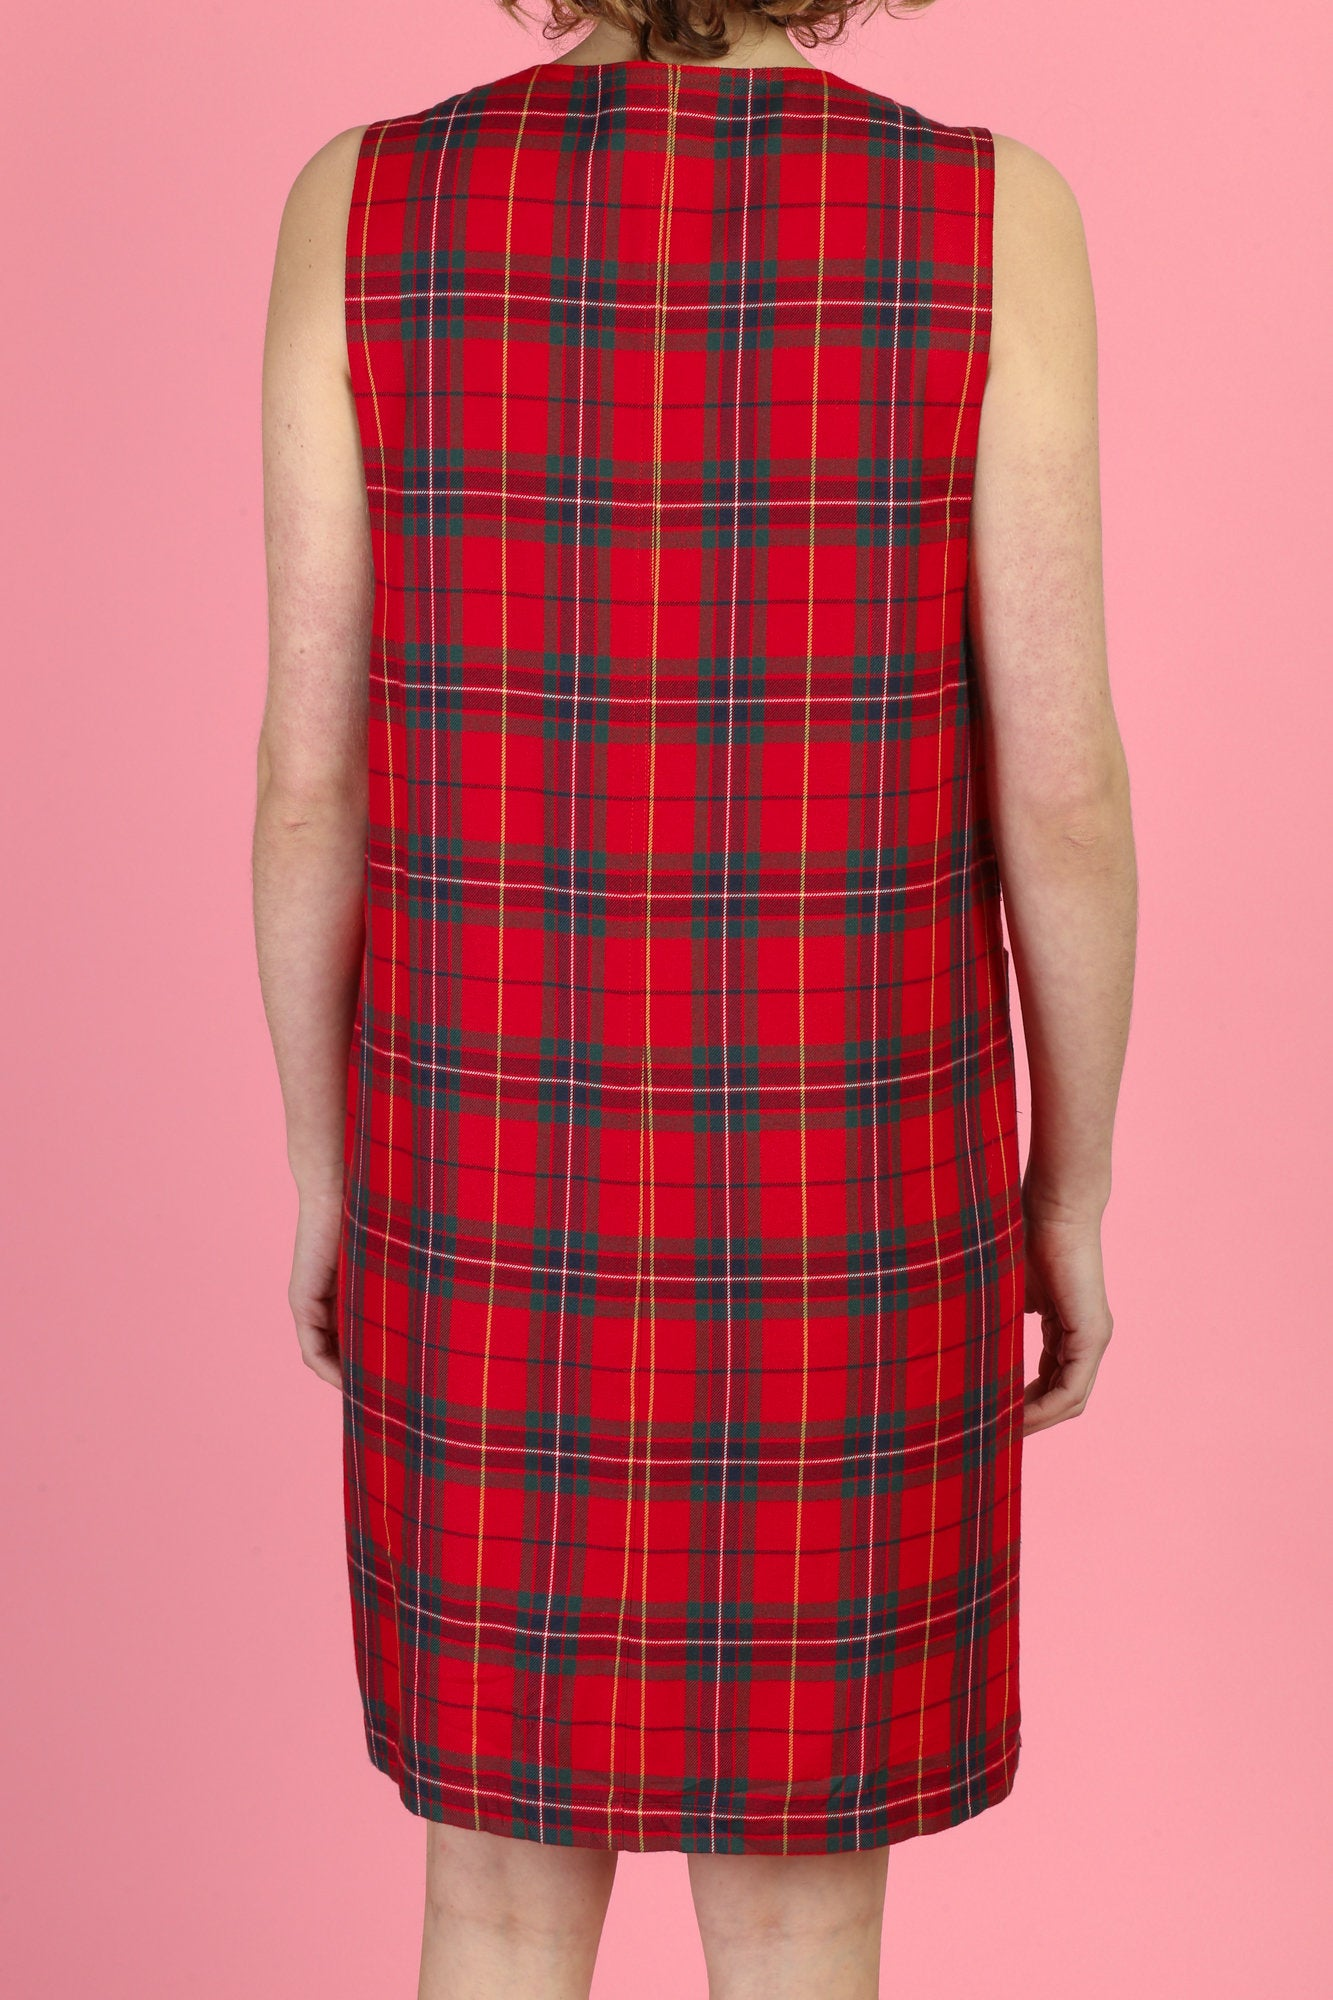 90s Red Plaid Pinafore Dress - Medium